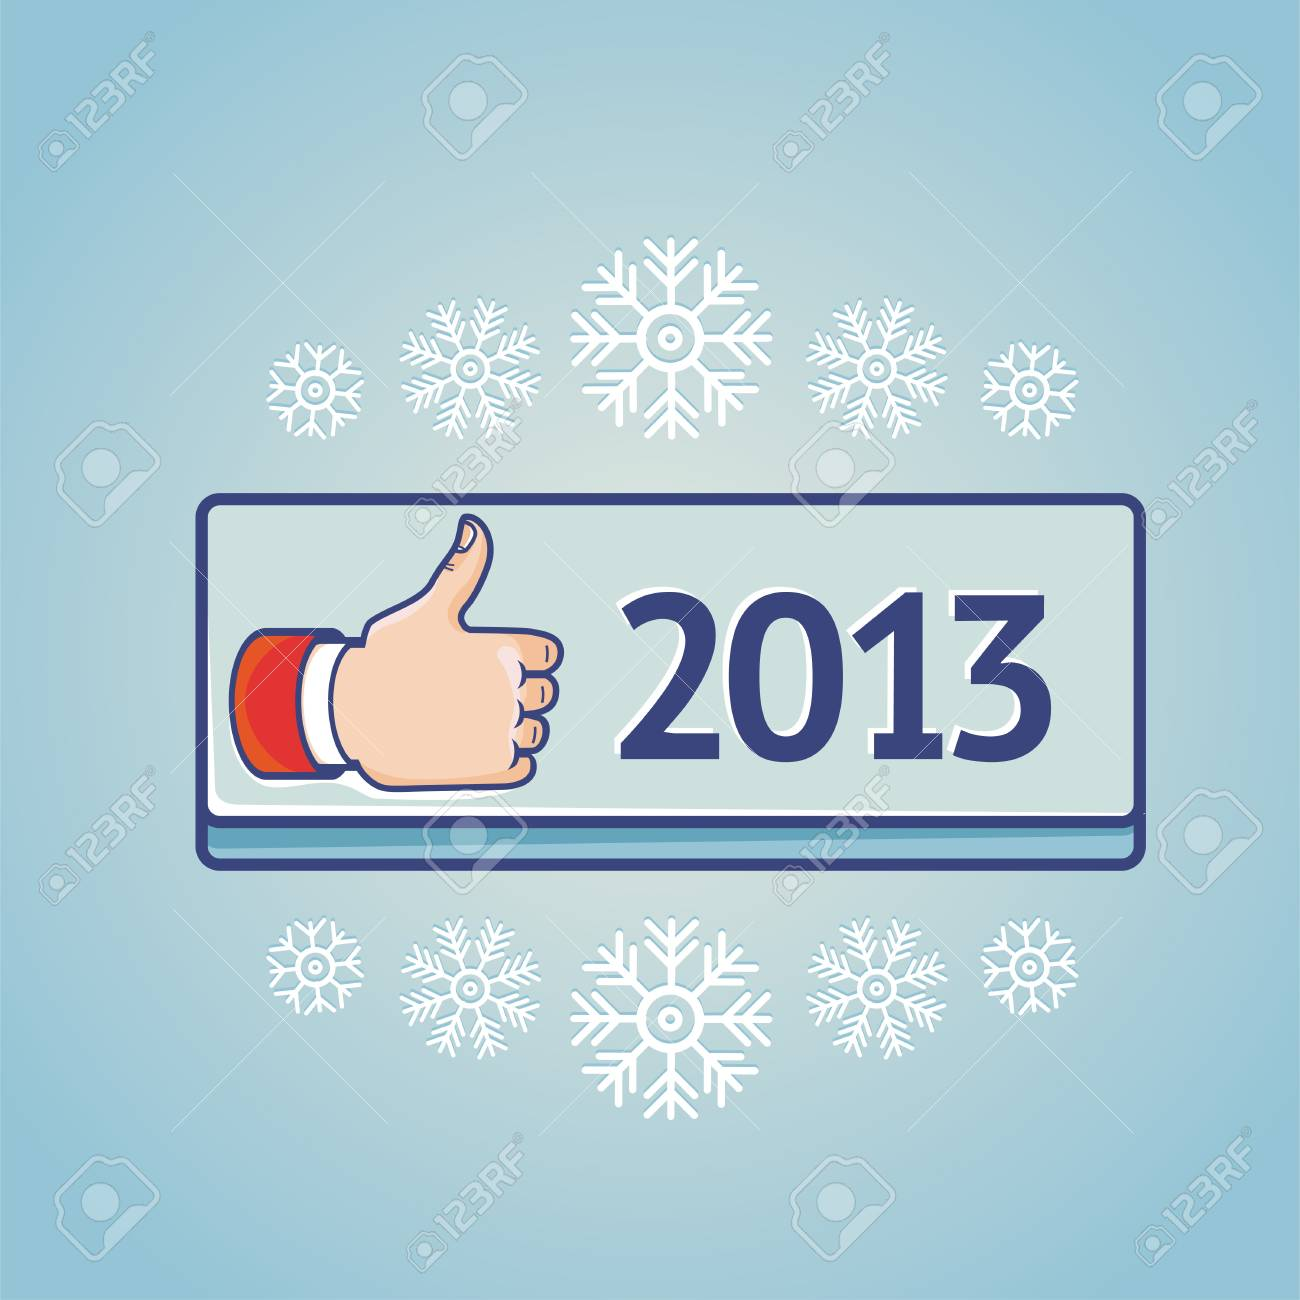 greeting card with like sign on blue button with 2013 - 15755054